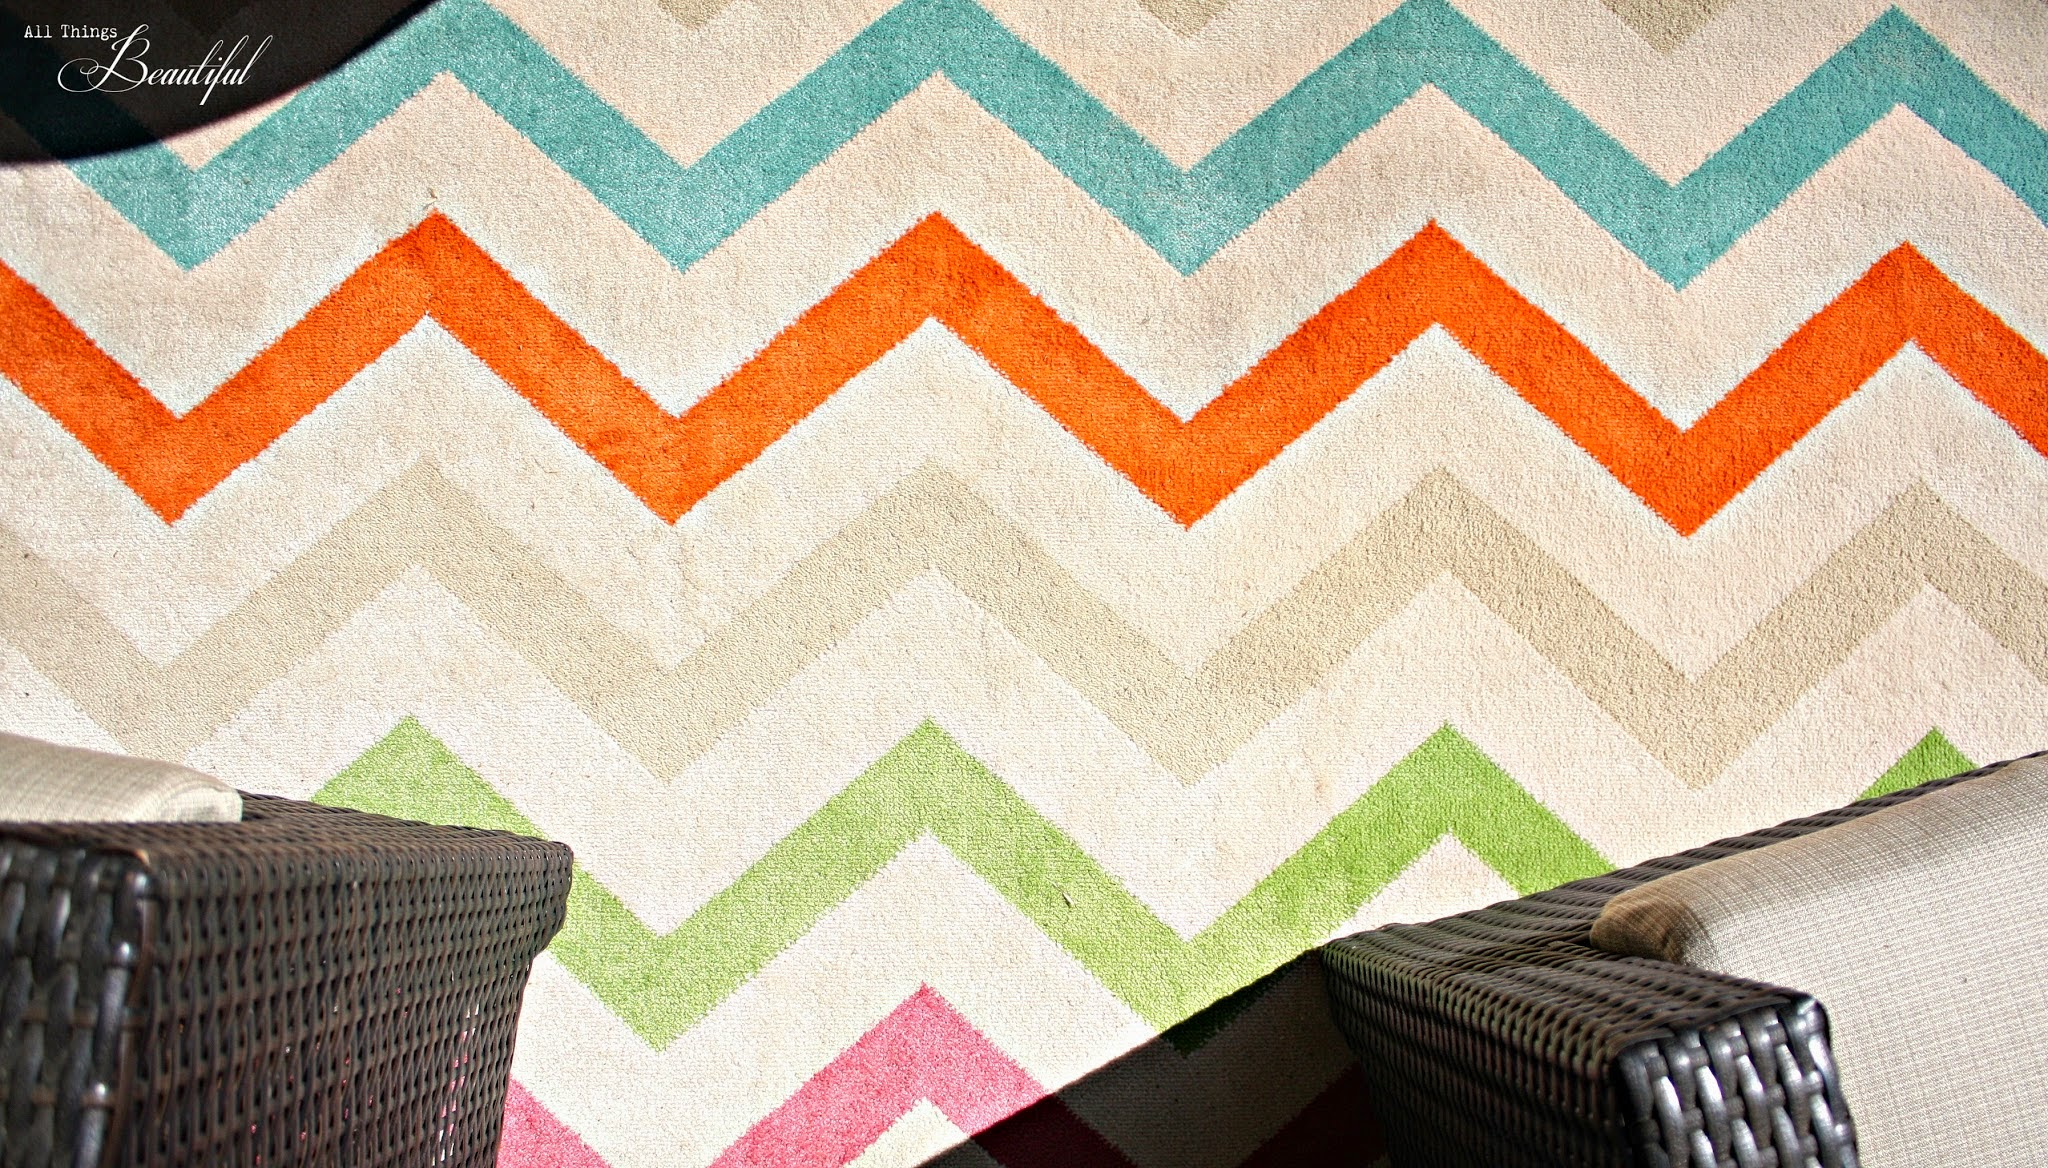 All Things Beautiful Spring Patio Update Mohawk Rug